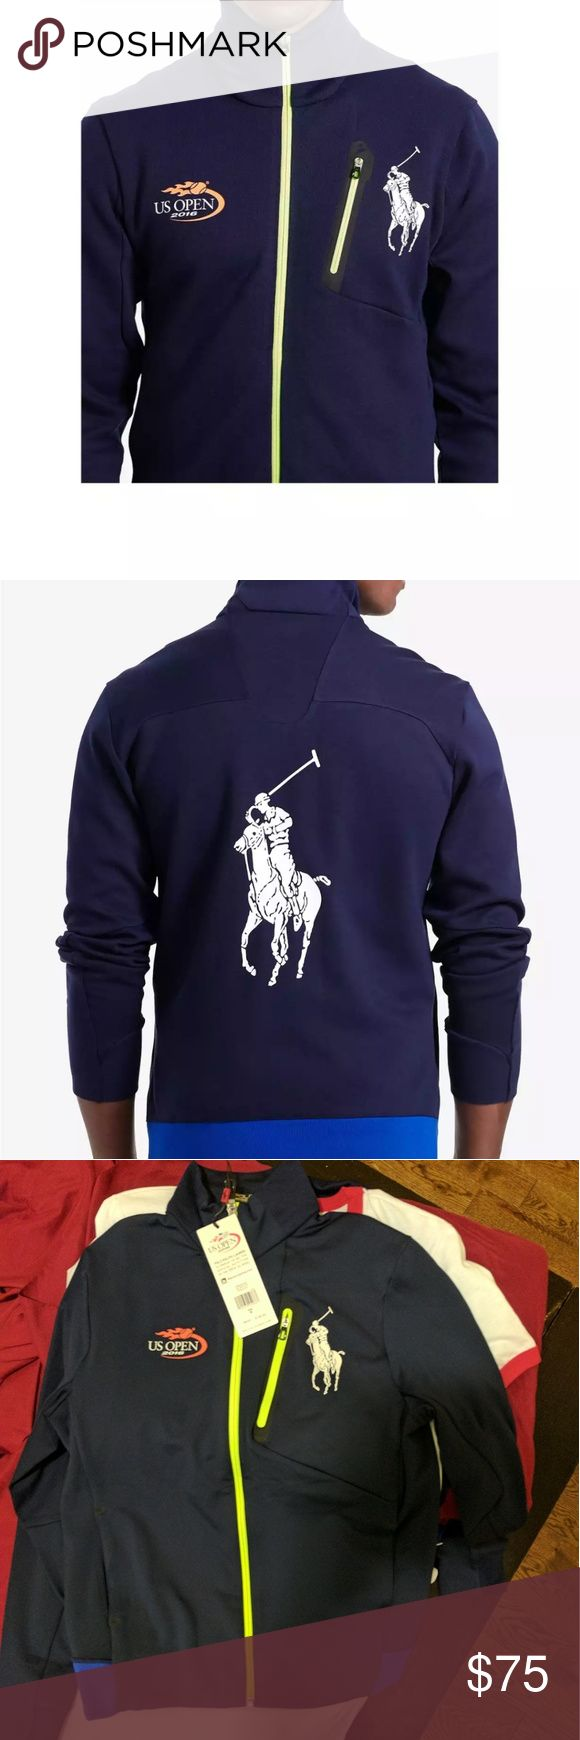 Collectors item- 2016 US Open polo Jacket Brand New! Tags on 2016  USOpen Ralph Lauren Jacket Ralph Lauren Jackets & Coats Utility Jackets